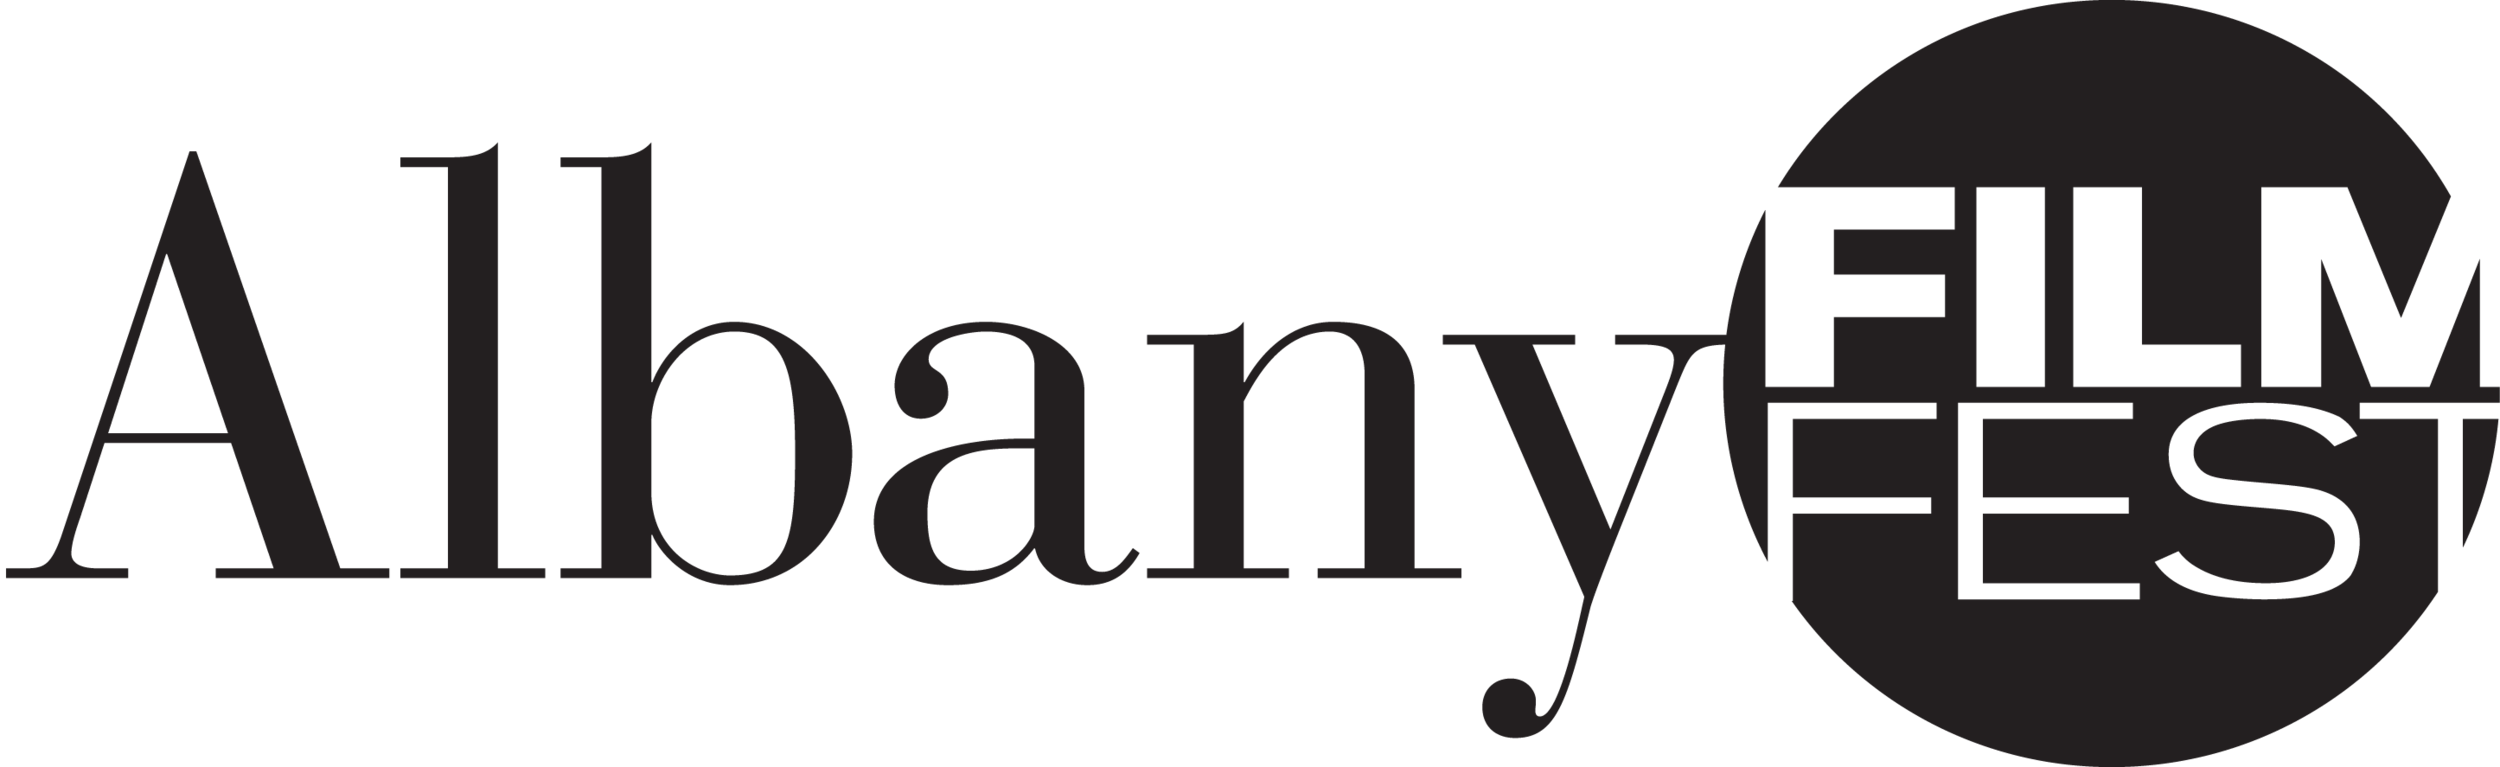 Annual_Albany_FF_Logo_Blk.png